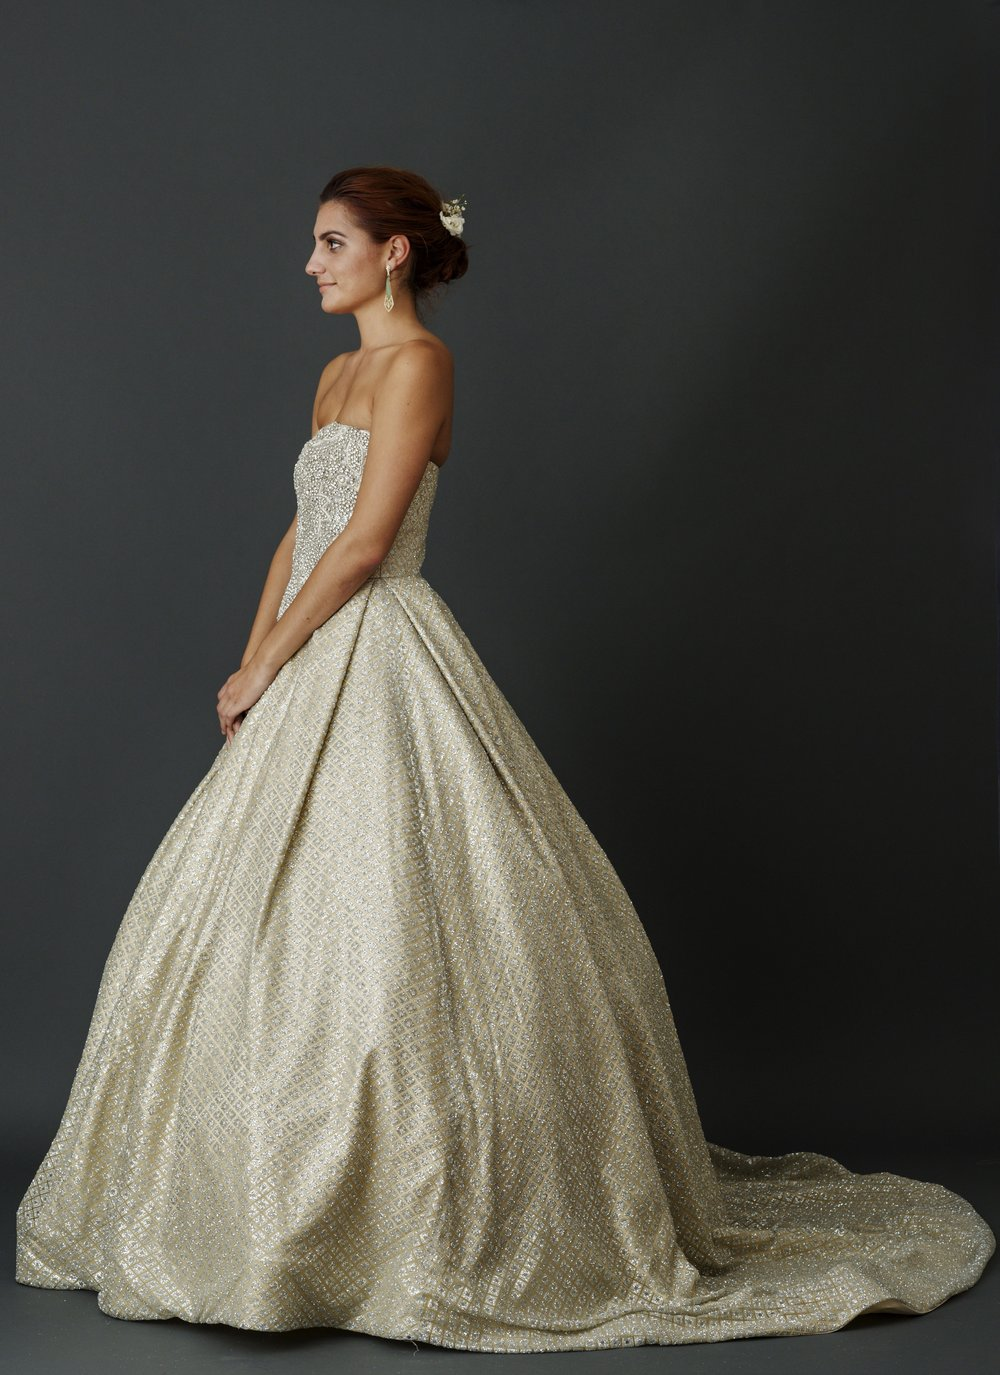 Gold ball gown profile.jpg